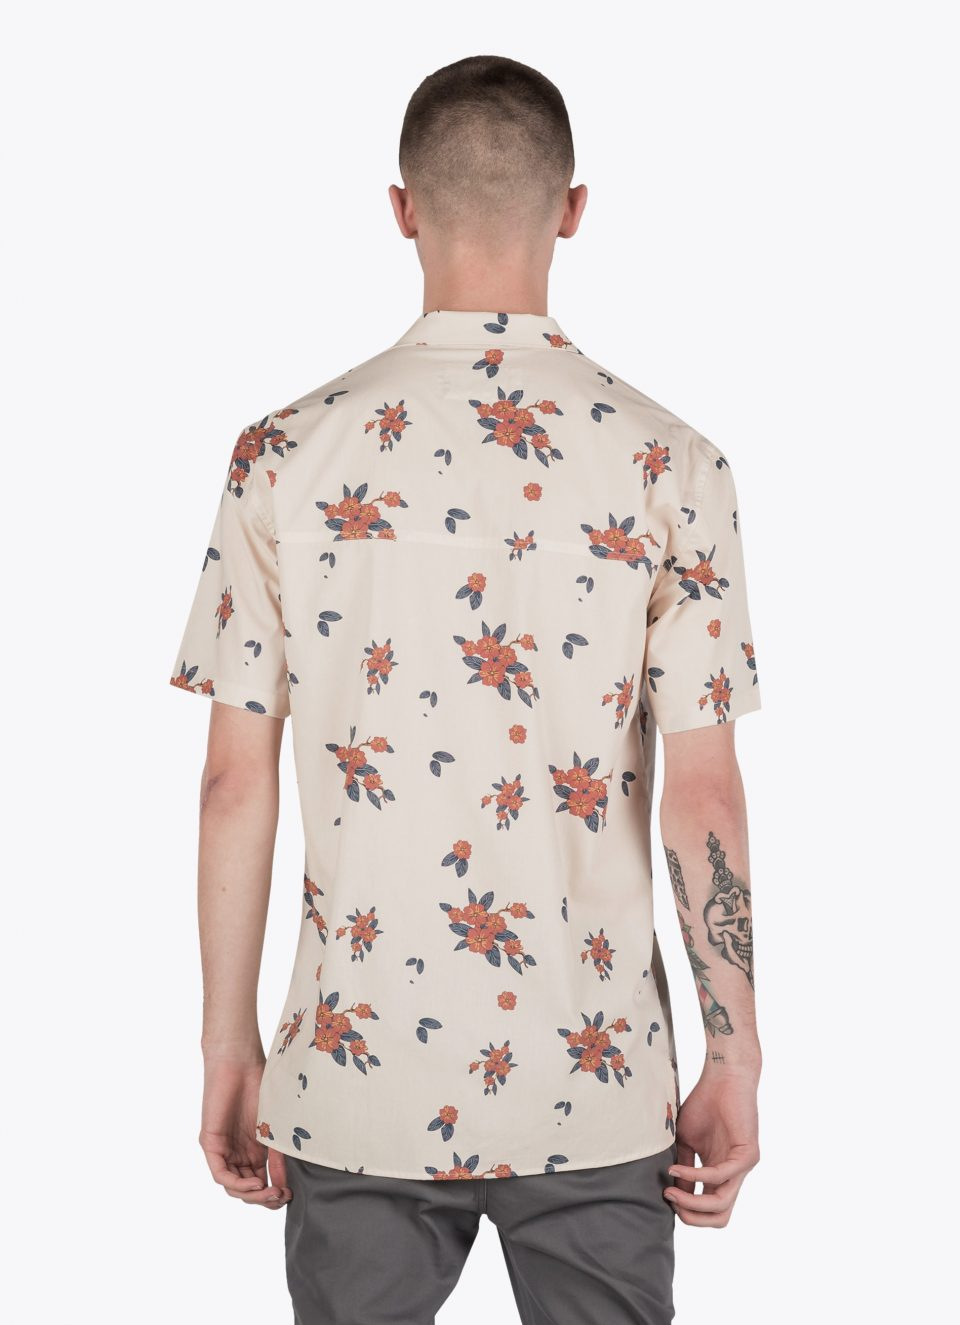 GALLARDIA SS SHIRT - NATURAL